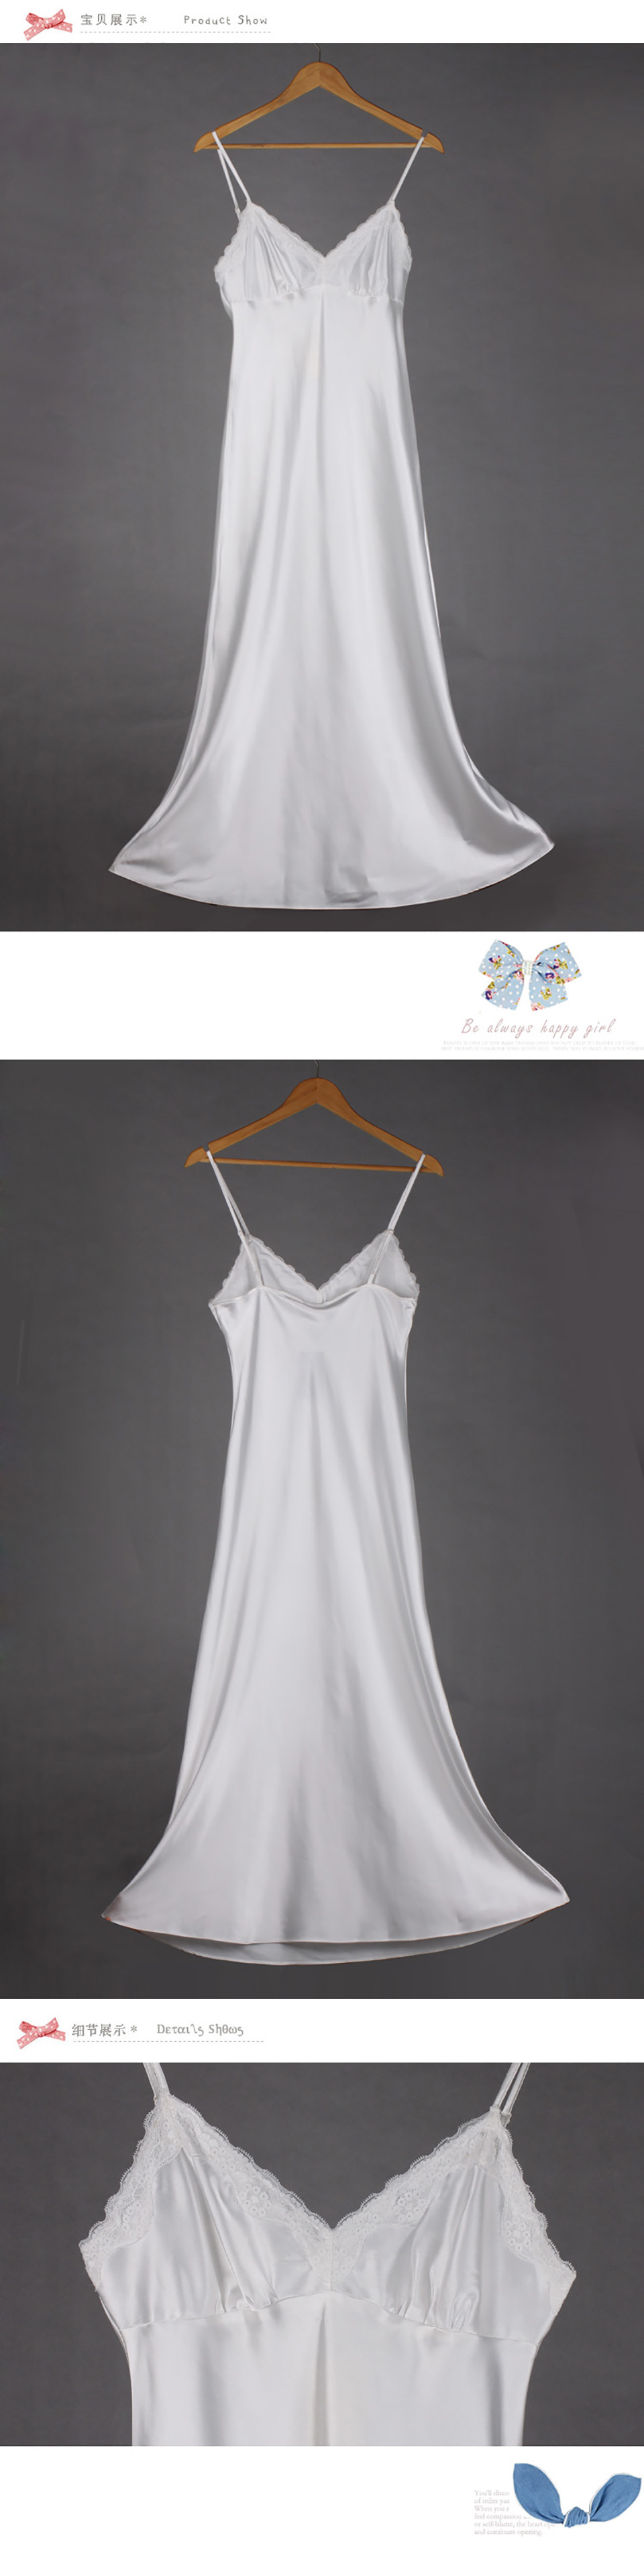 9330053e4c 2019 Lace Nightgowns V Neck Sleepdress White Ankle High Nightwear ...